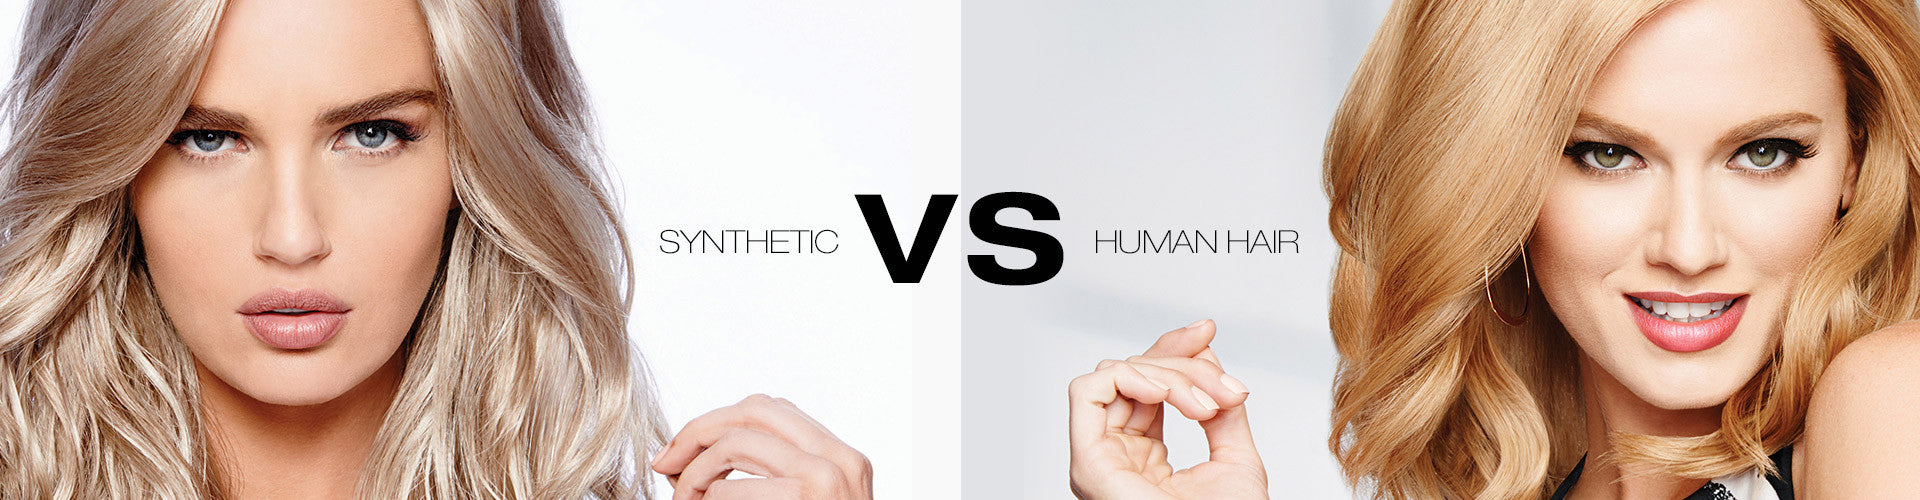 The Differences Between Human Hair & Synthetic Hair